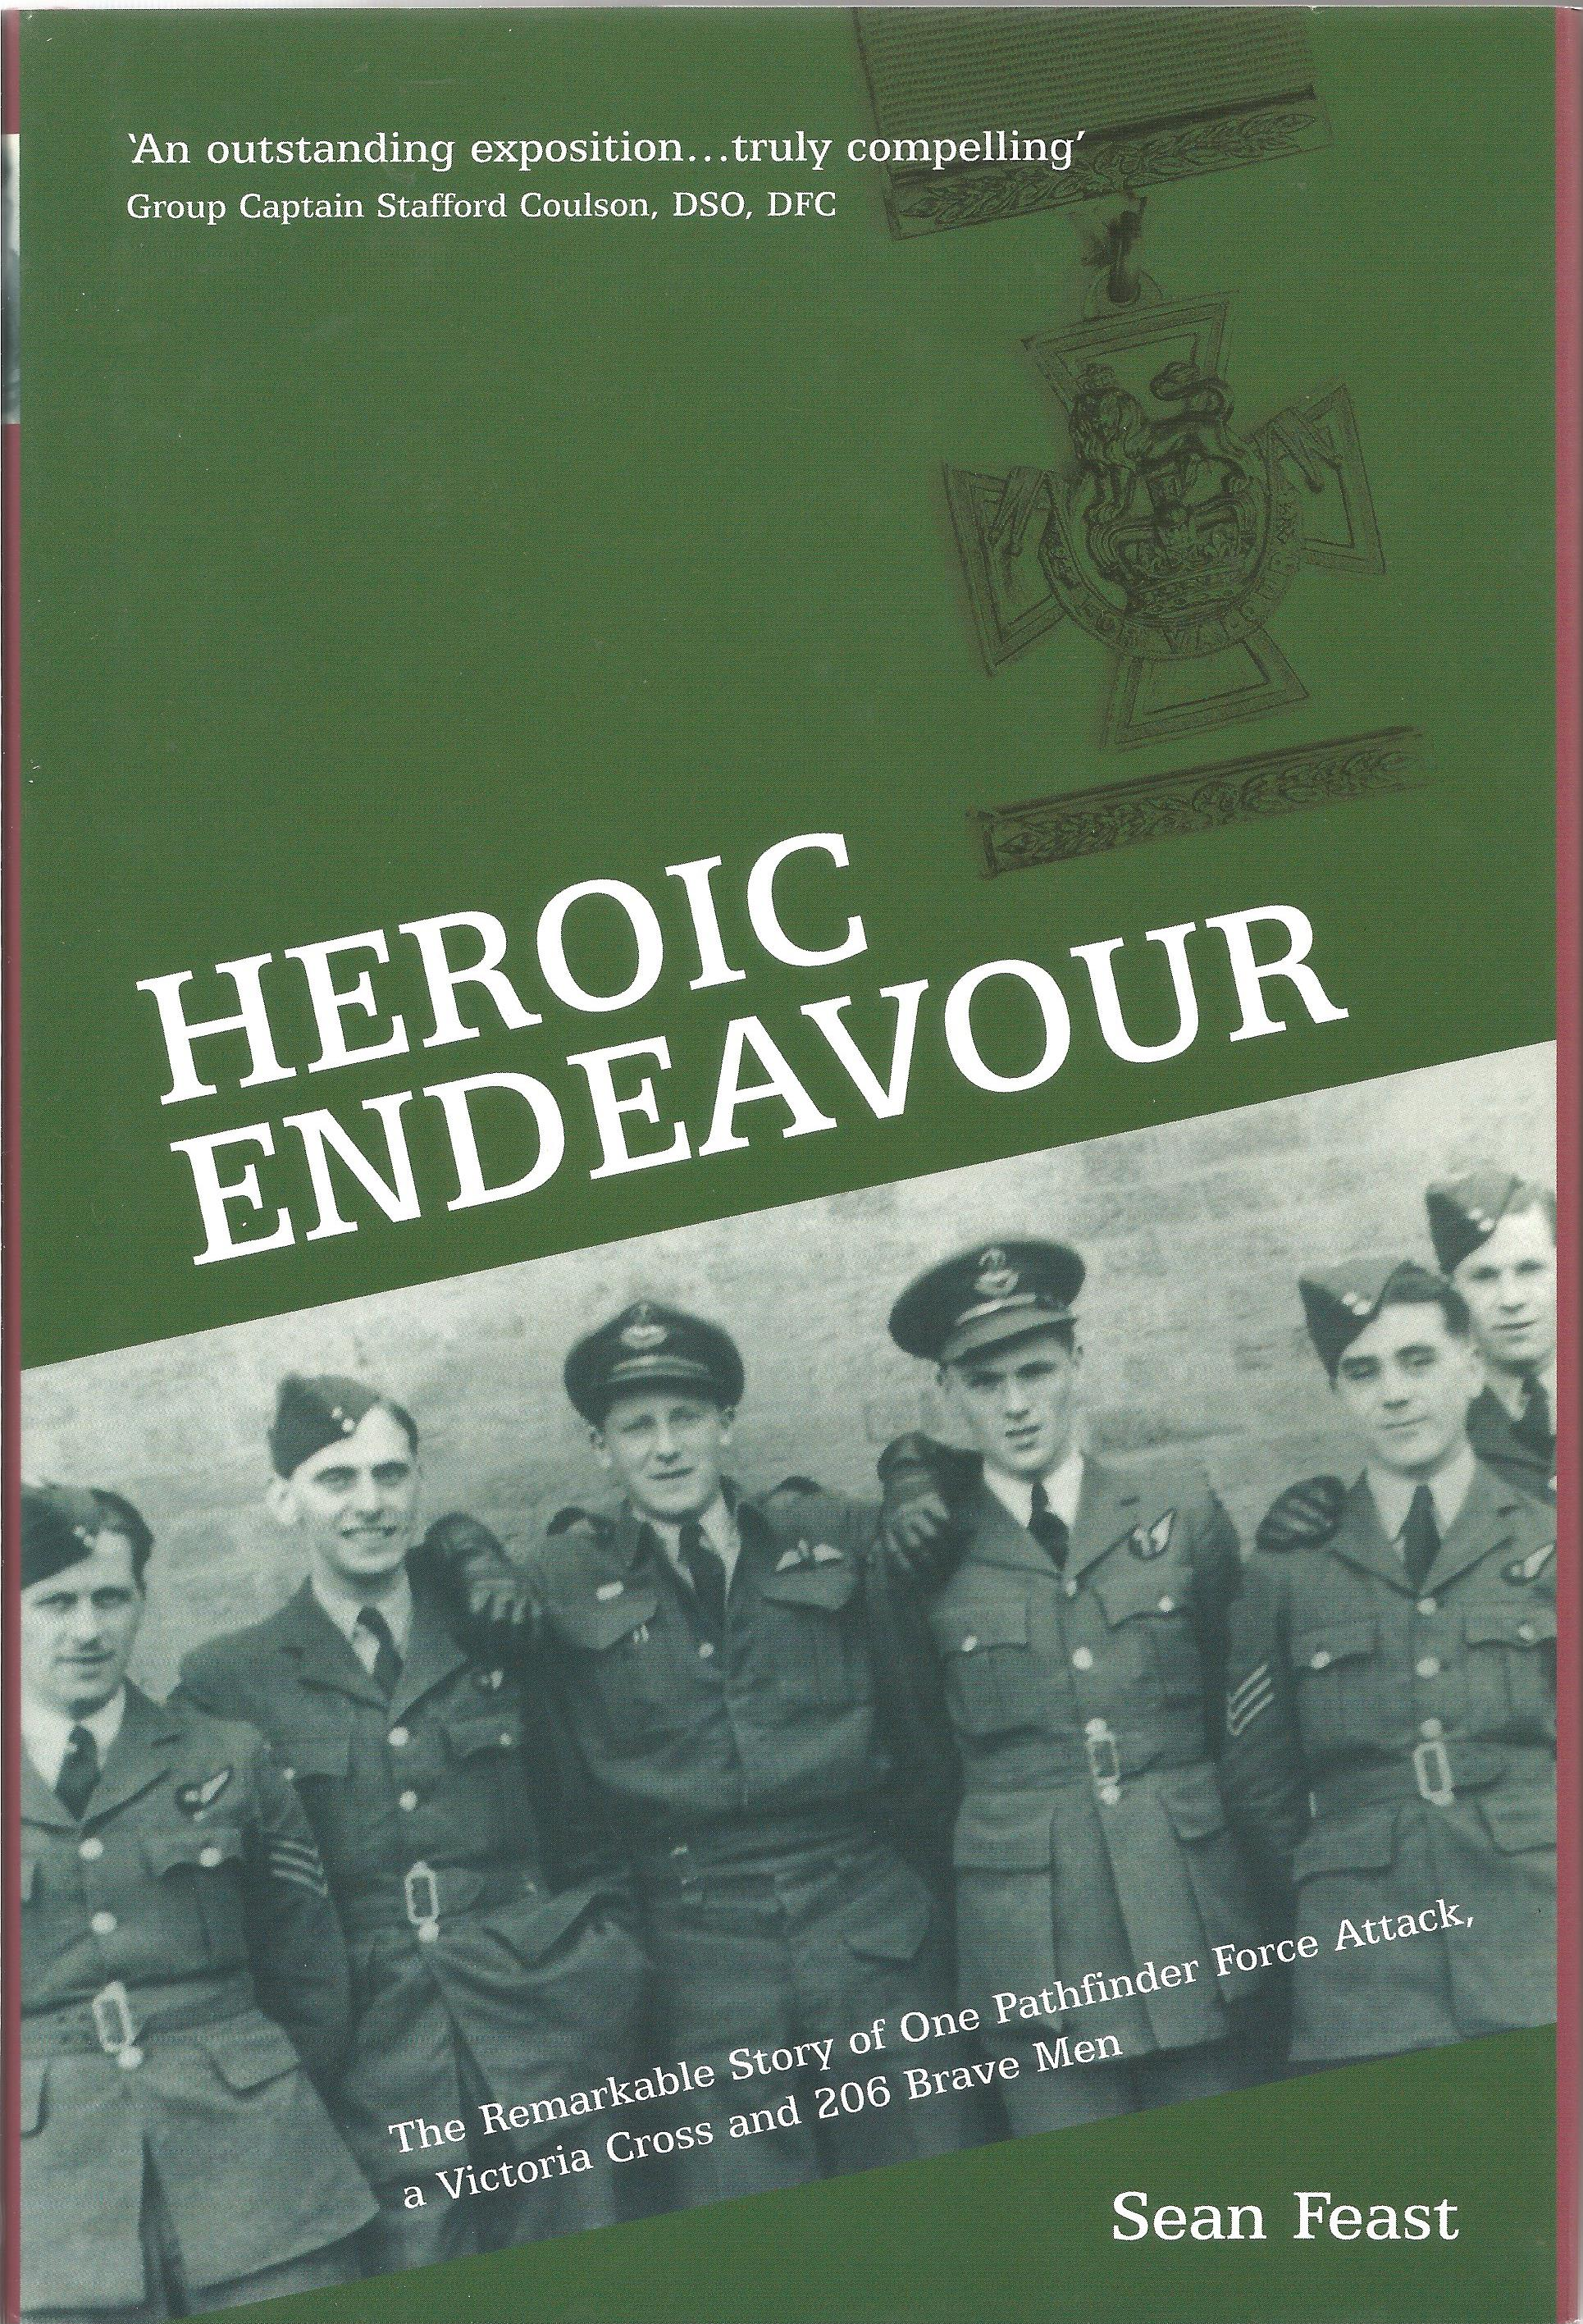 Sean Feast. Heroic Endeavour. The remarkable story of one pathfinder force attack, a Victoria